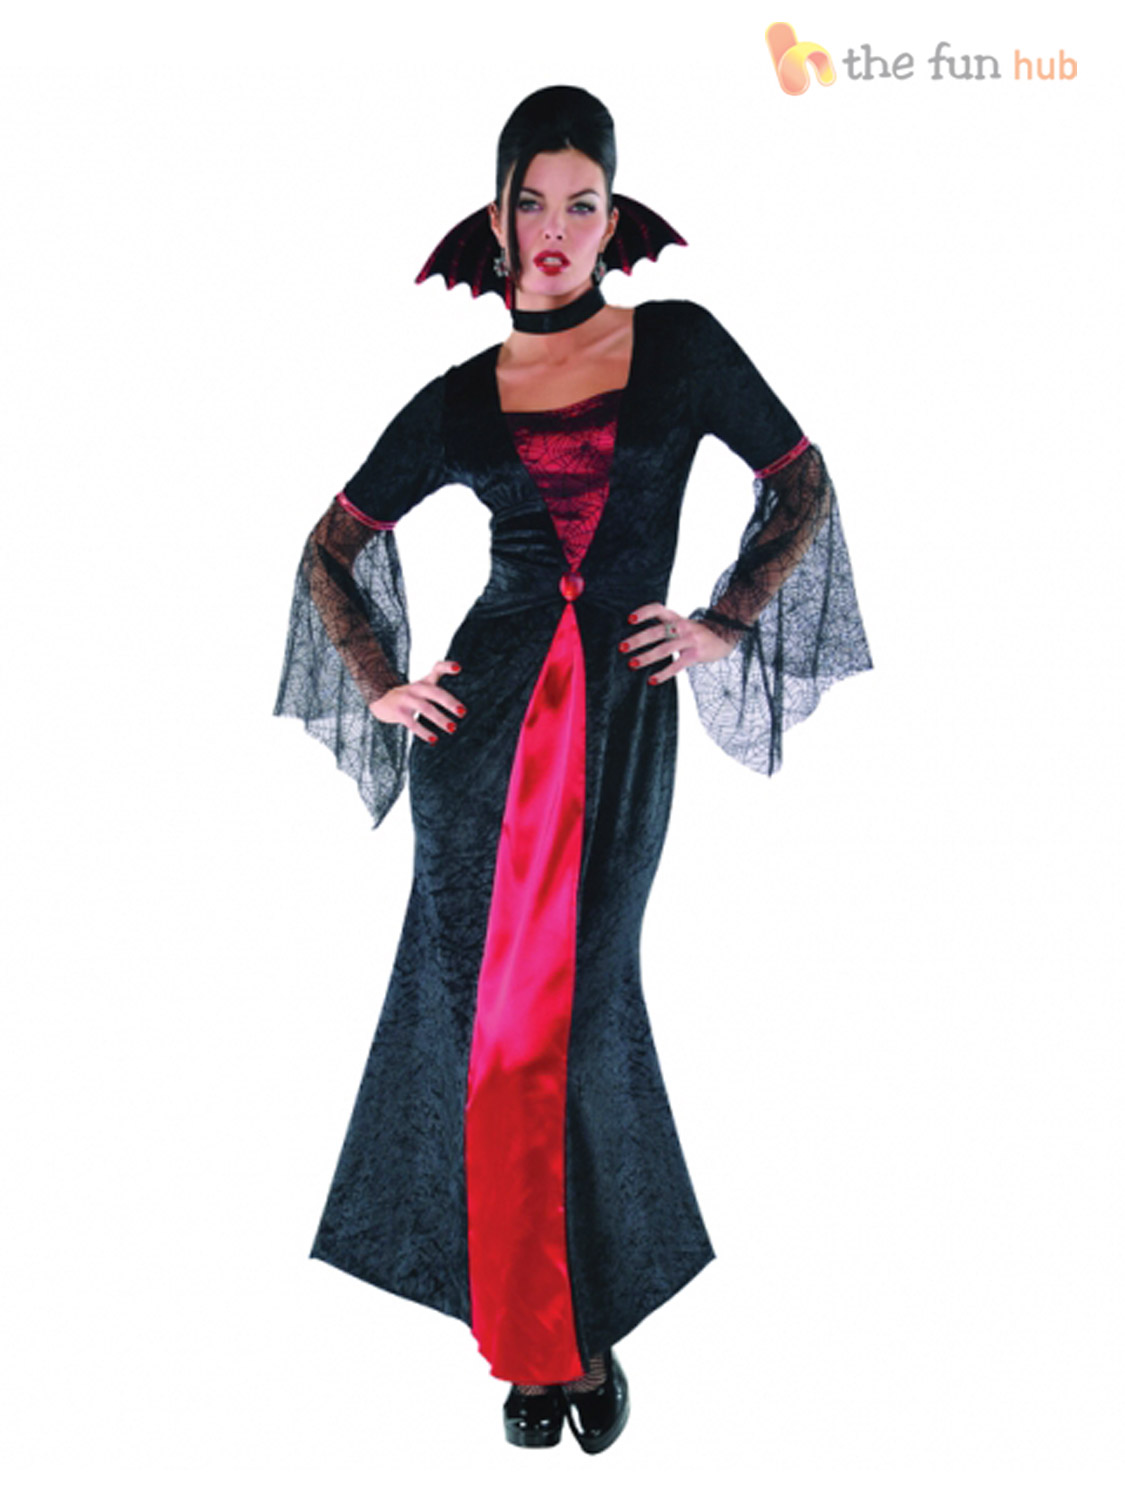 ladies vampire costume long womens vampiress halloween fancy dress adult outfit ebay. Black Bedroom Furniture Sets. Home Design Ideas